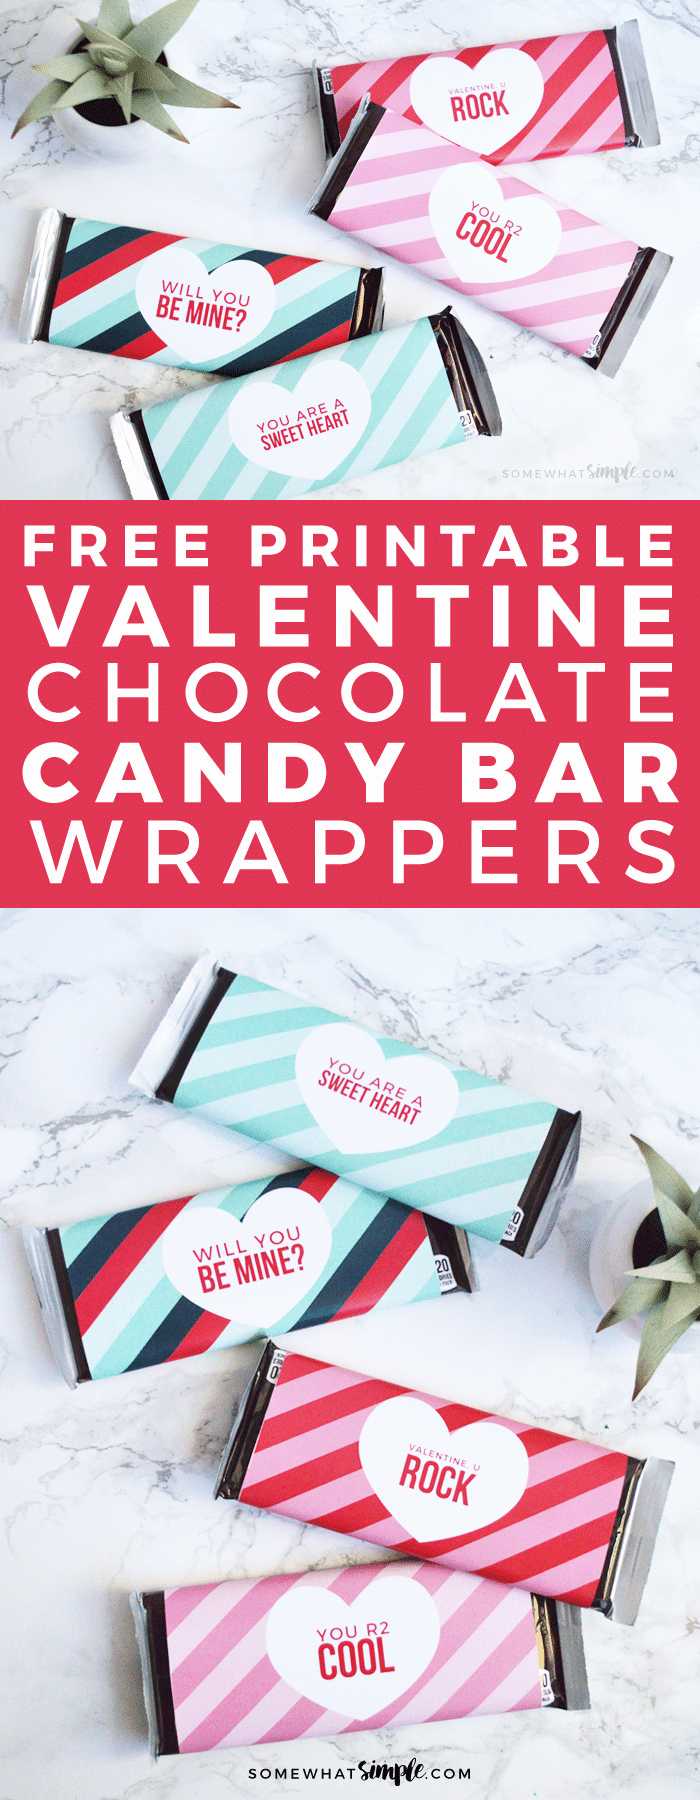 Free Candy Bar Wrappers Awesome Valentine Candy Bar Wrappers Printable somewhat Simple